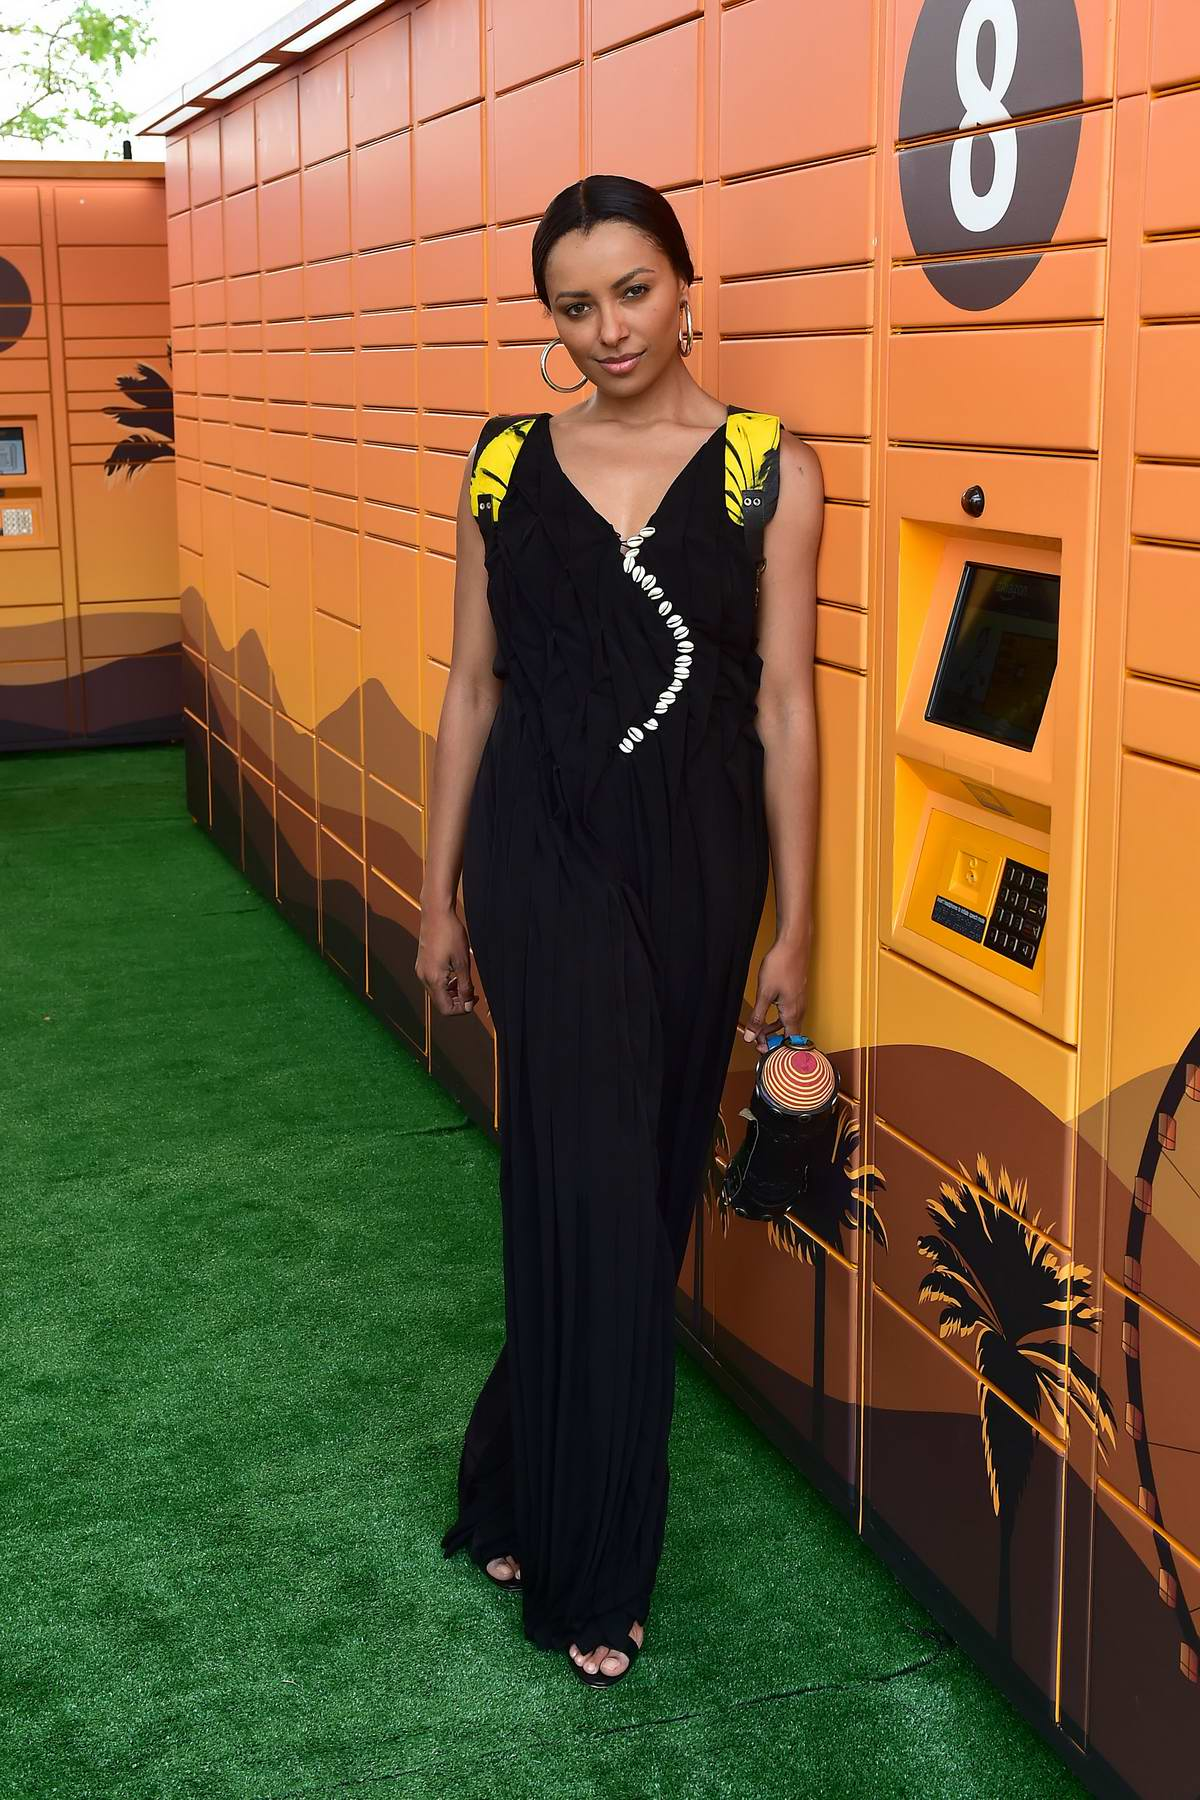 Kat Graham pose for photos at the Amazon Lockers during Coachella 2019, Weekend 2 in Indio, California